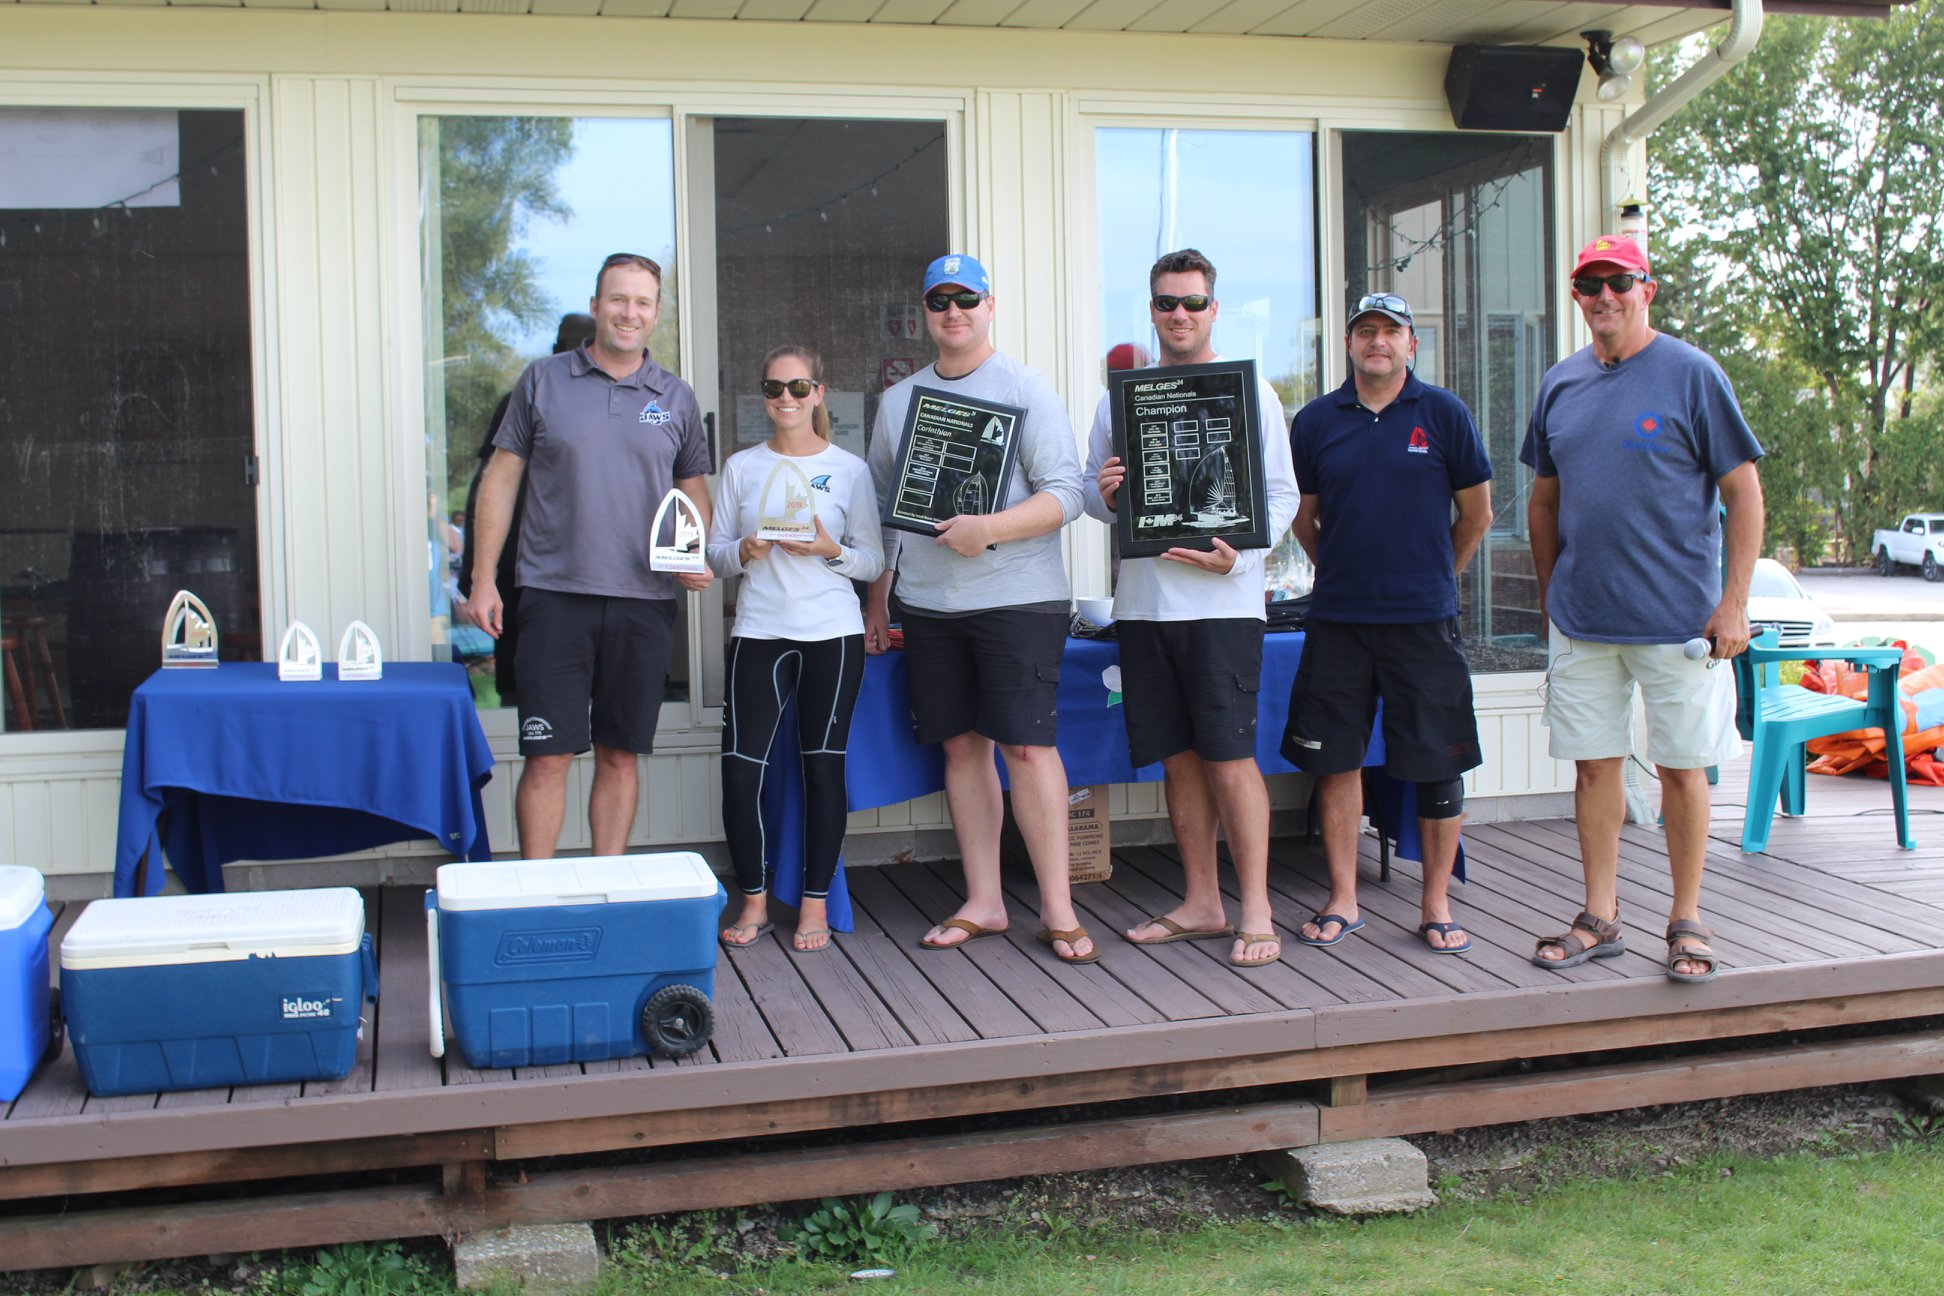 2019 Melges 24 Canadian National Champions